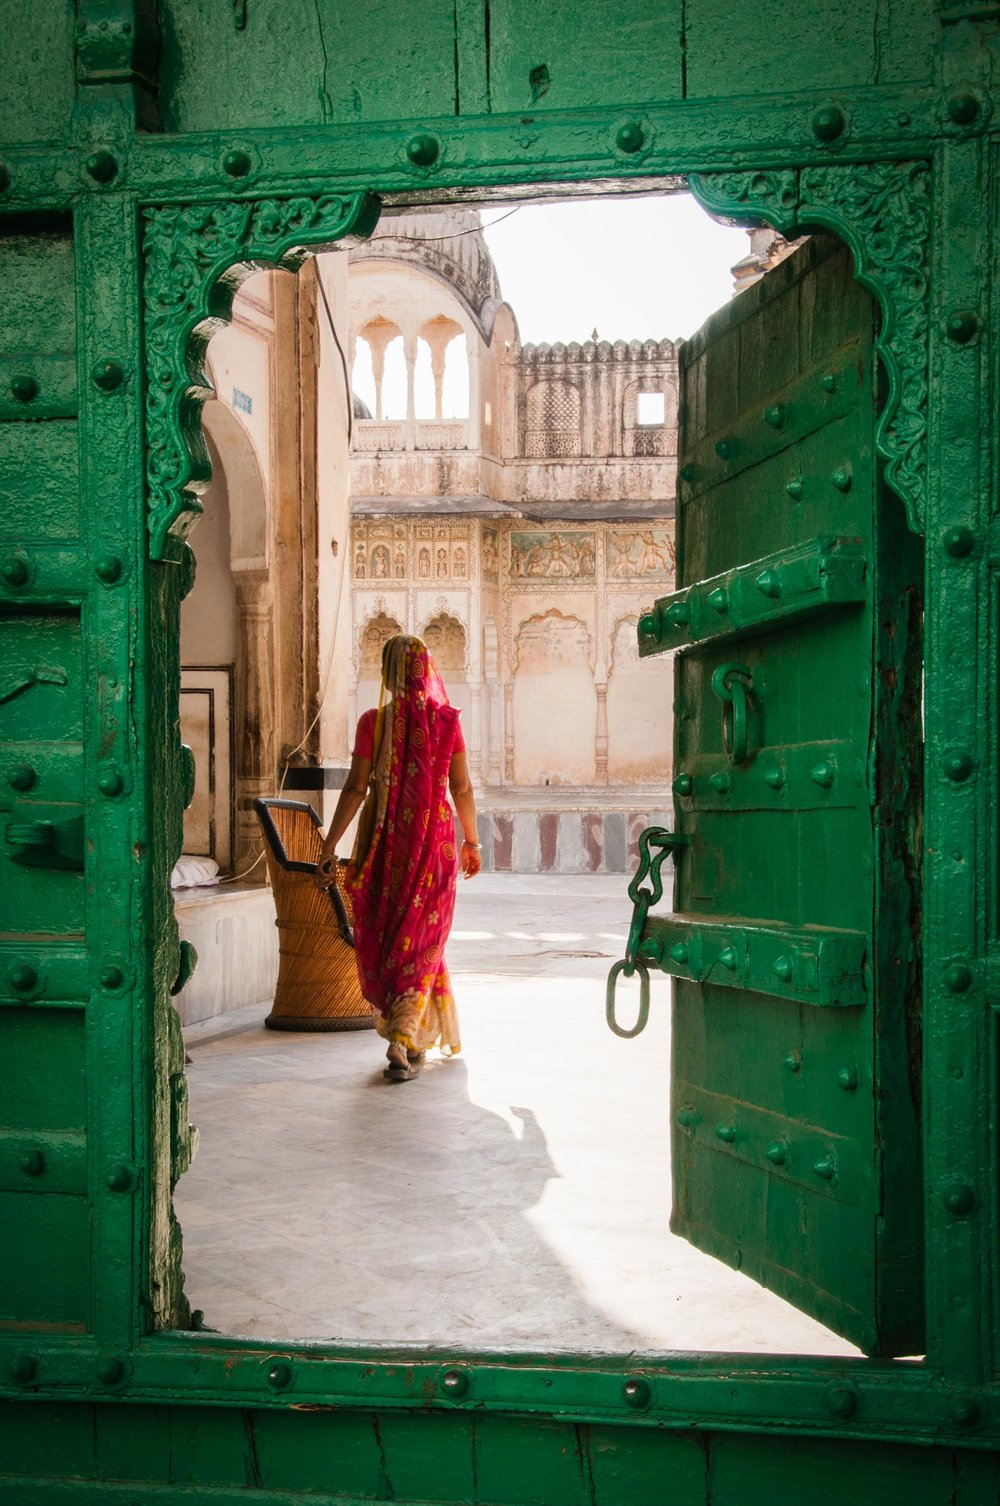 Green Door: Pushkar, Rajasthan, India